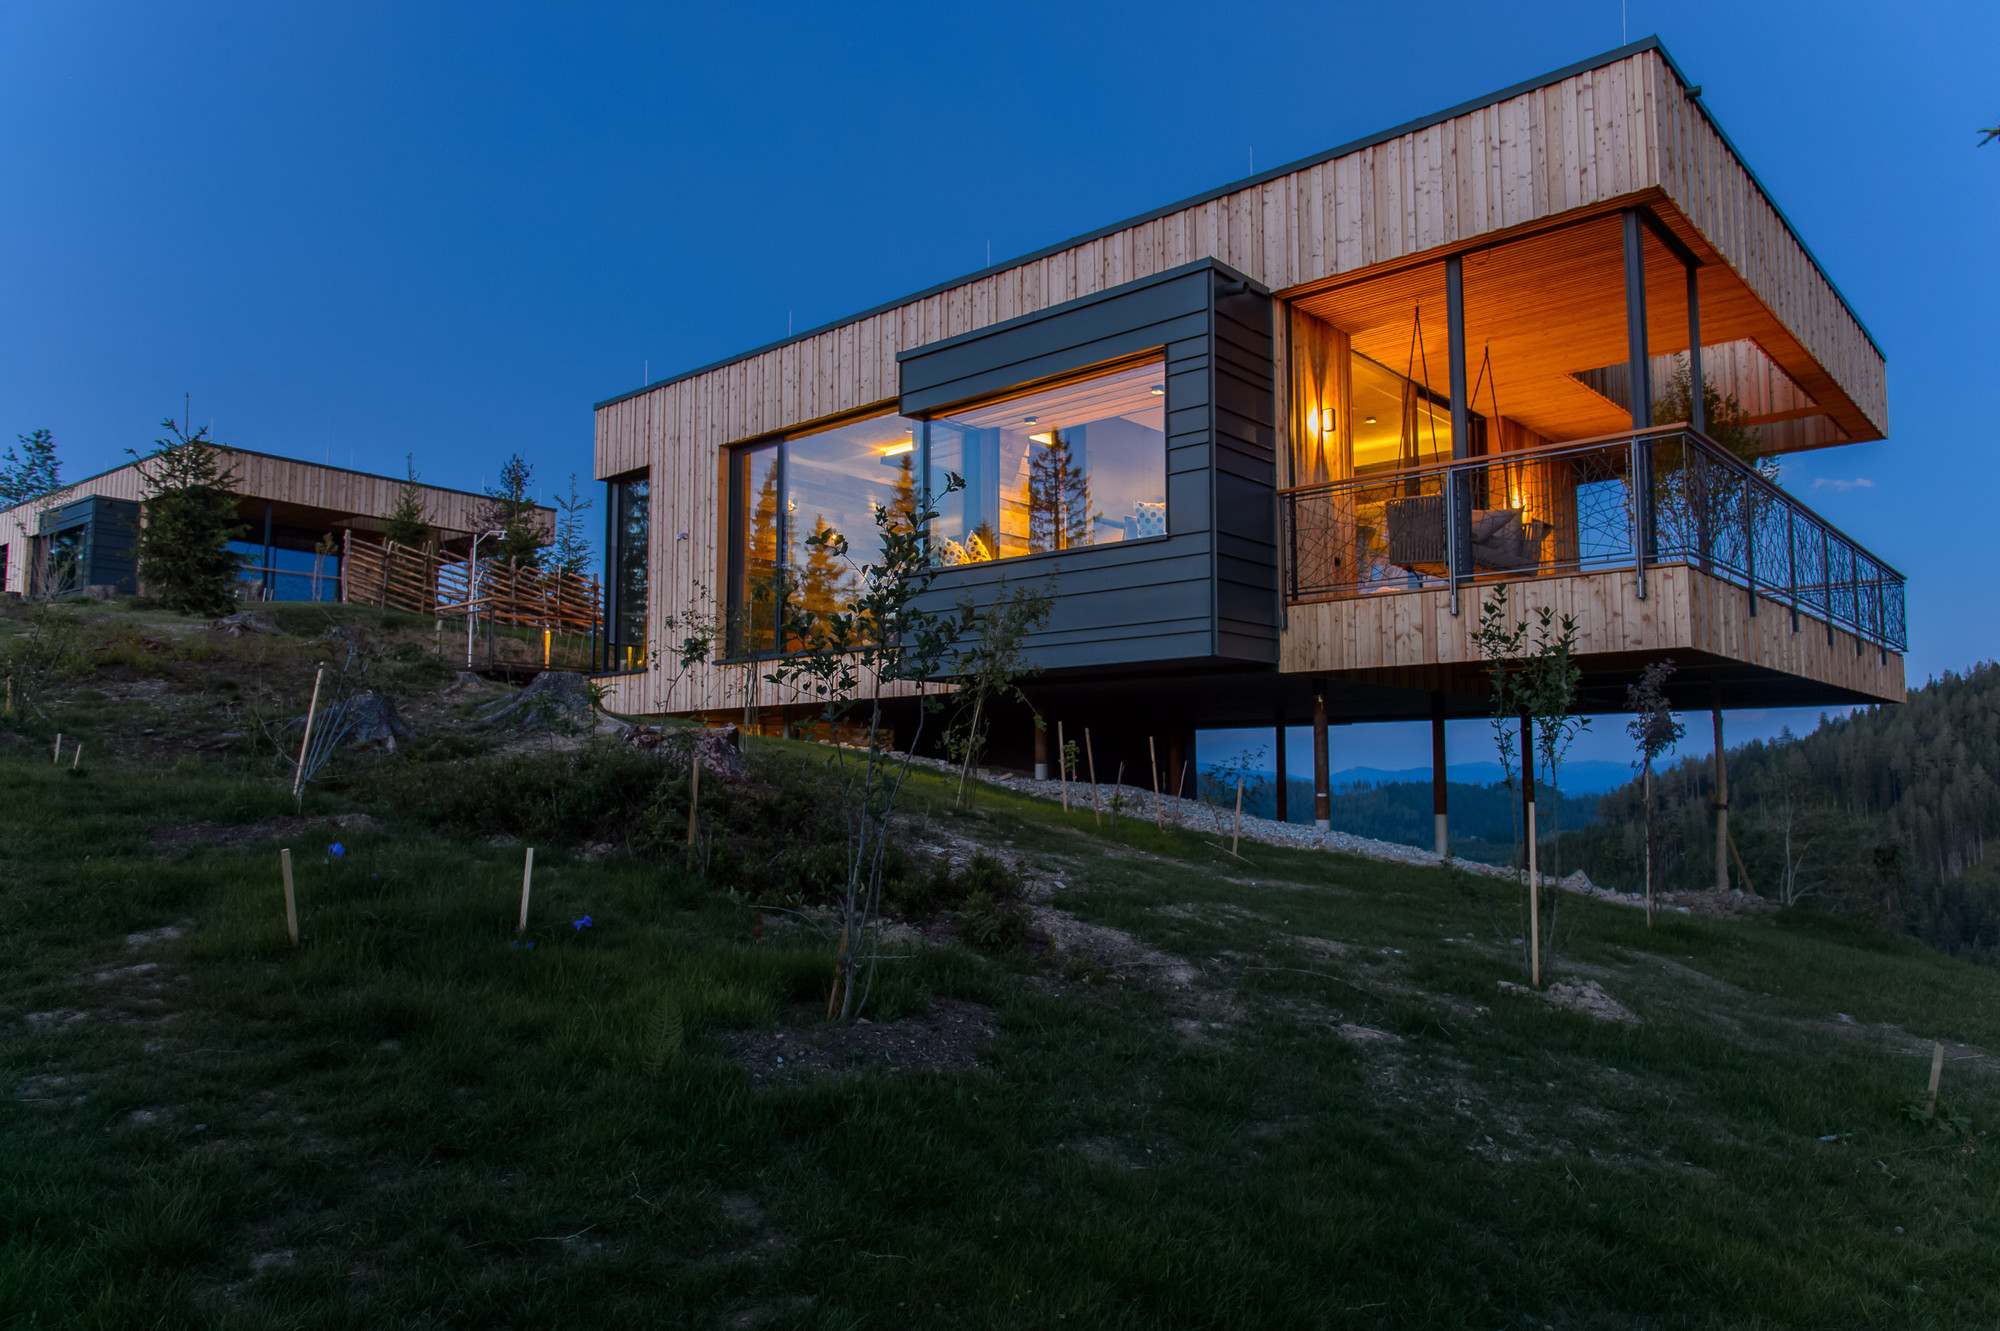 Gallery of deluxe mountain chalets viereck architects 16 for Mtn chalet